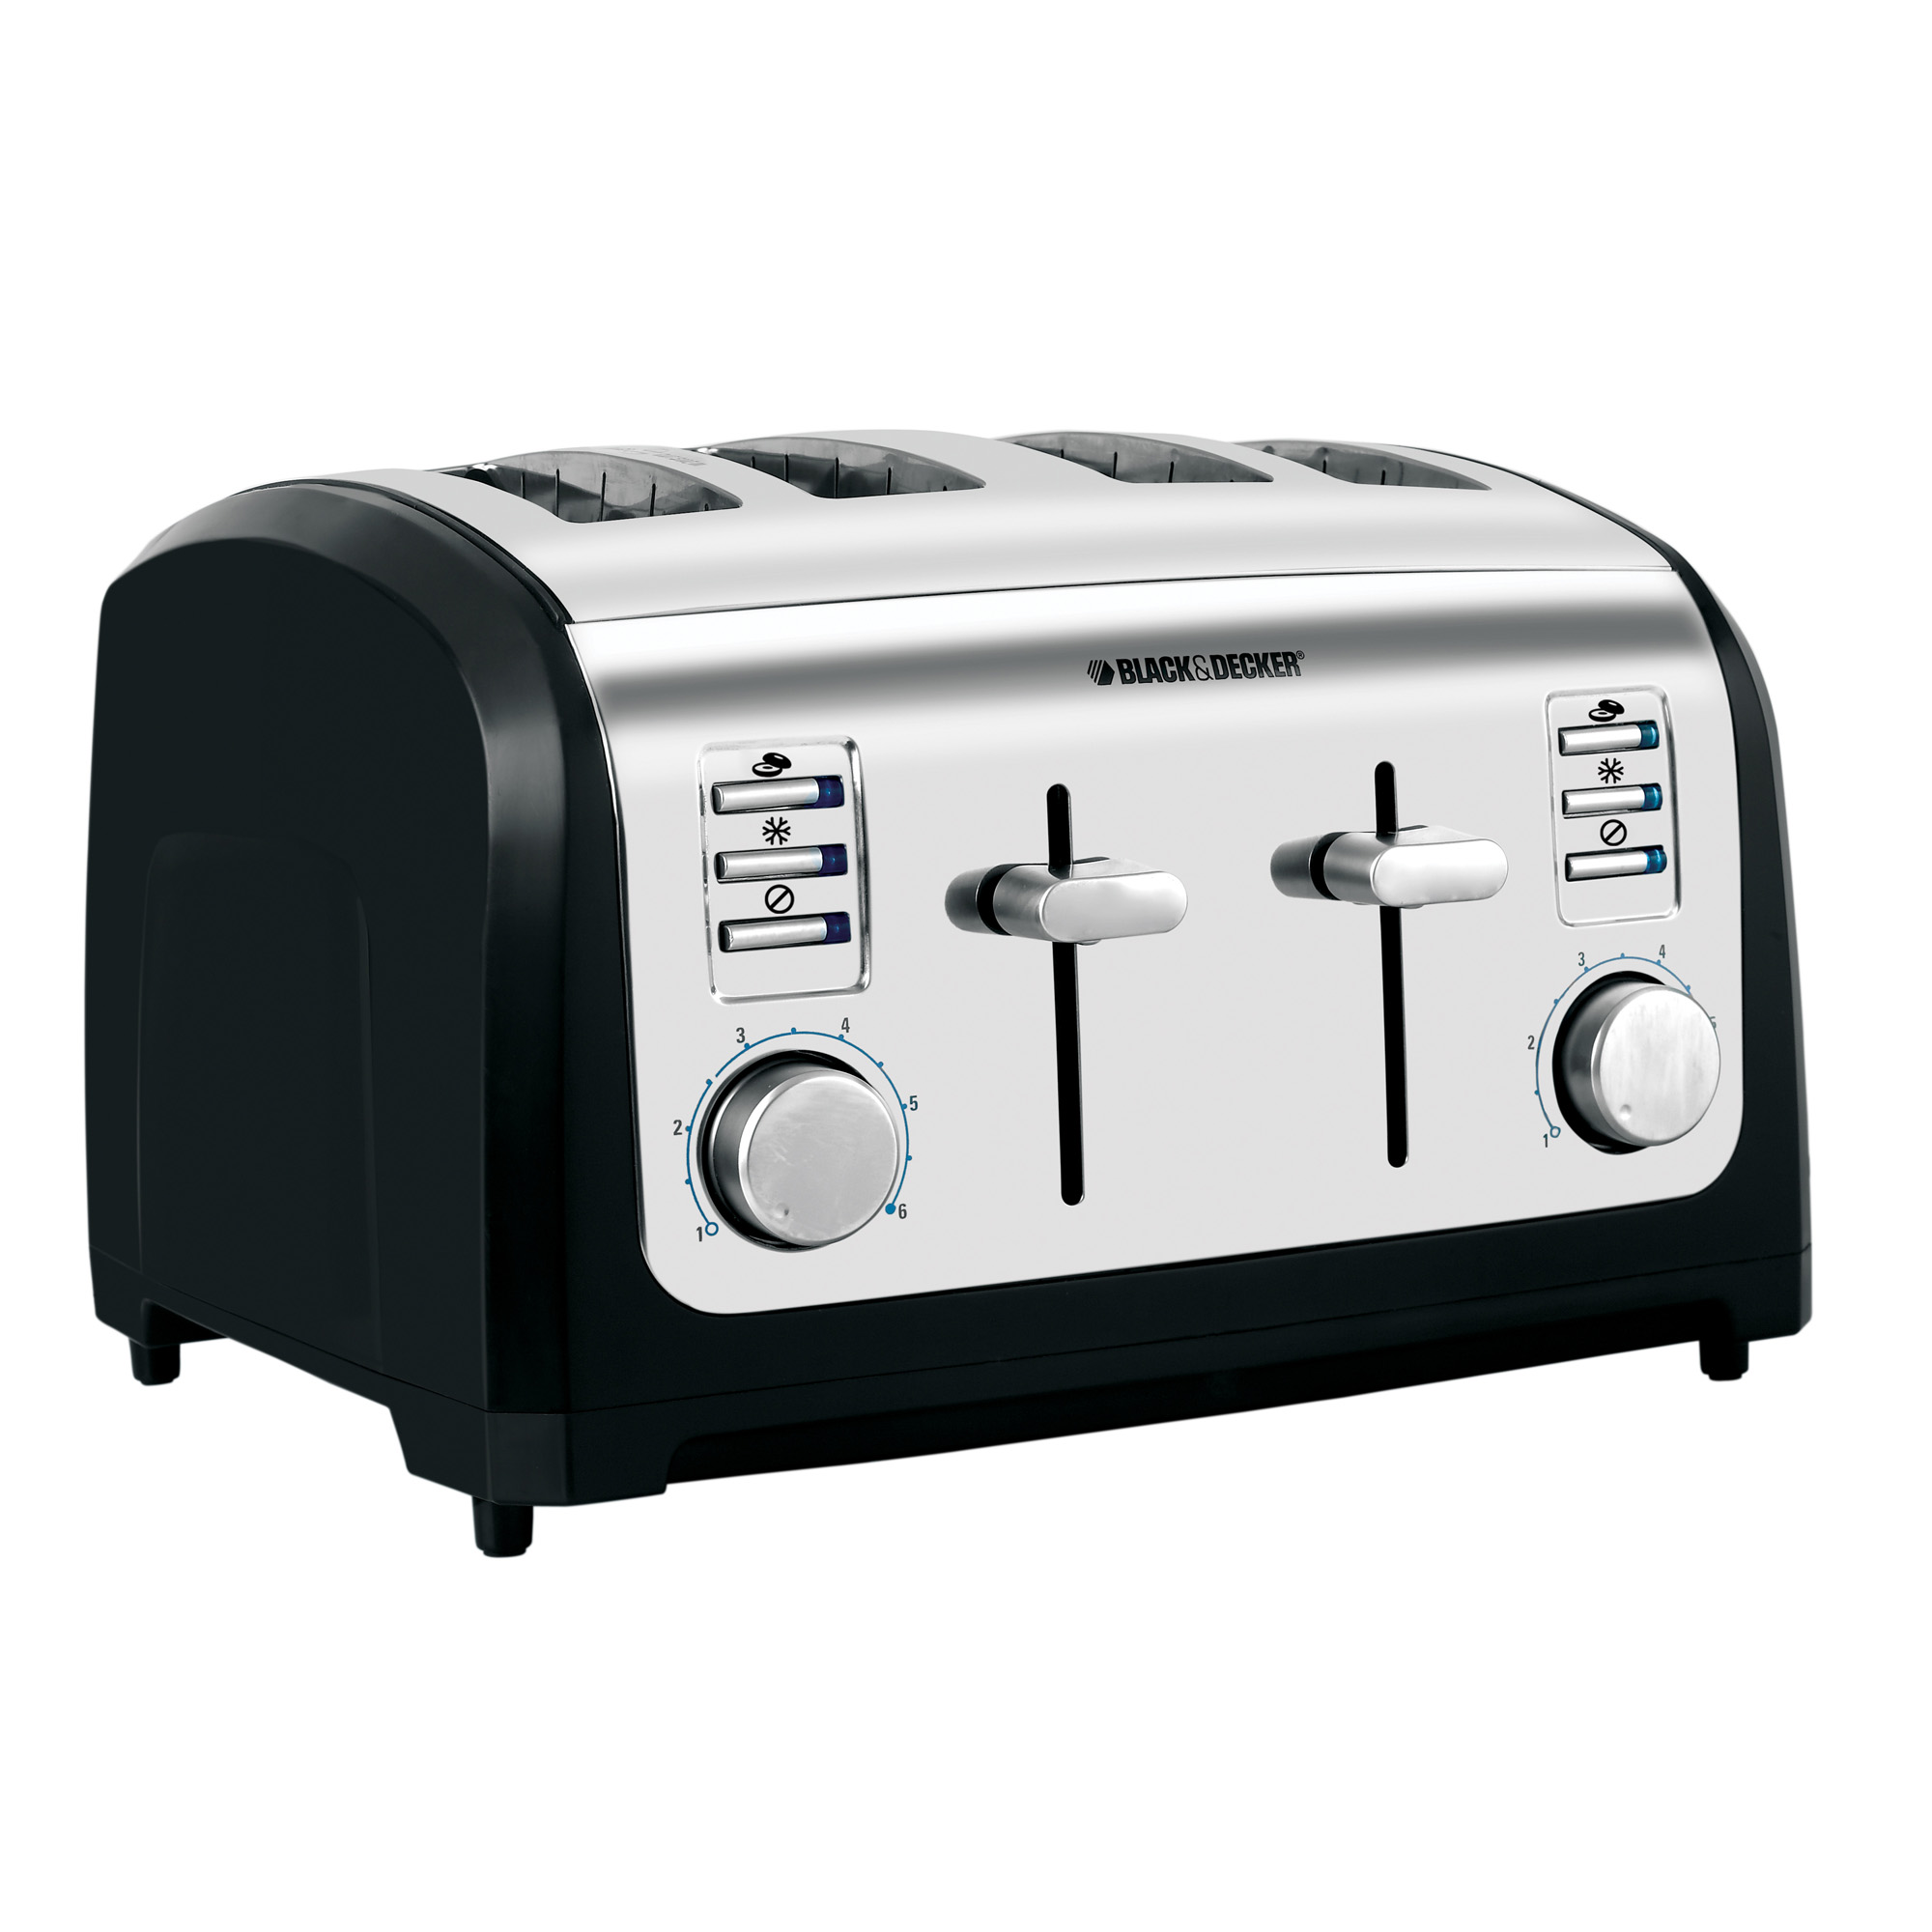 Shop Toasters Buy A 4 Slice Black And Decker Toaster T4030